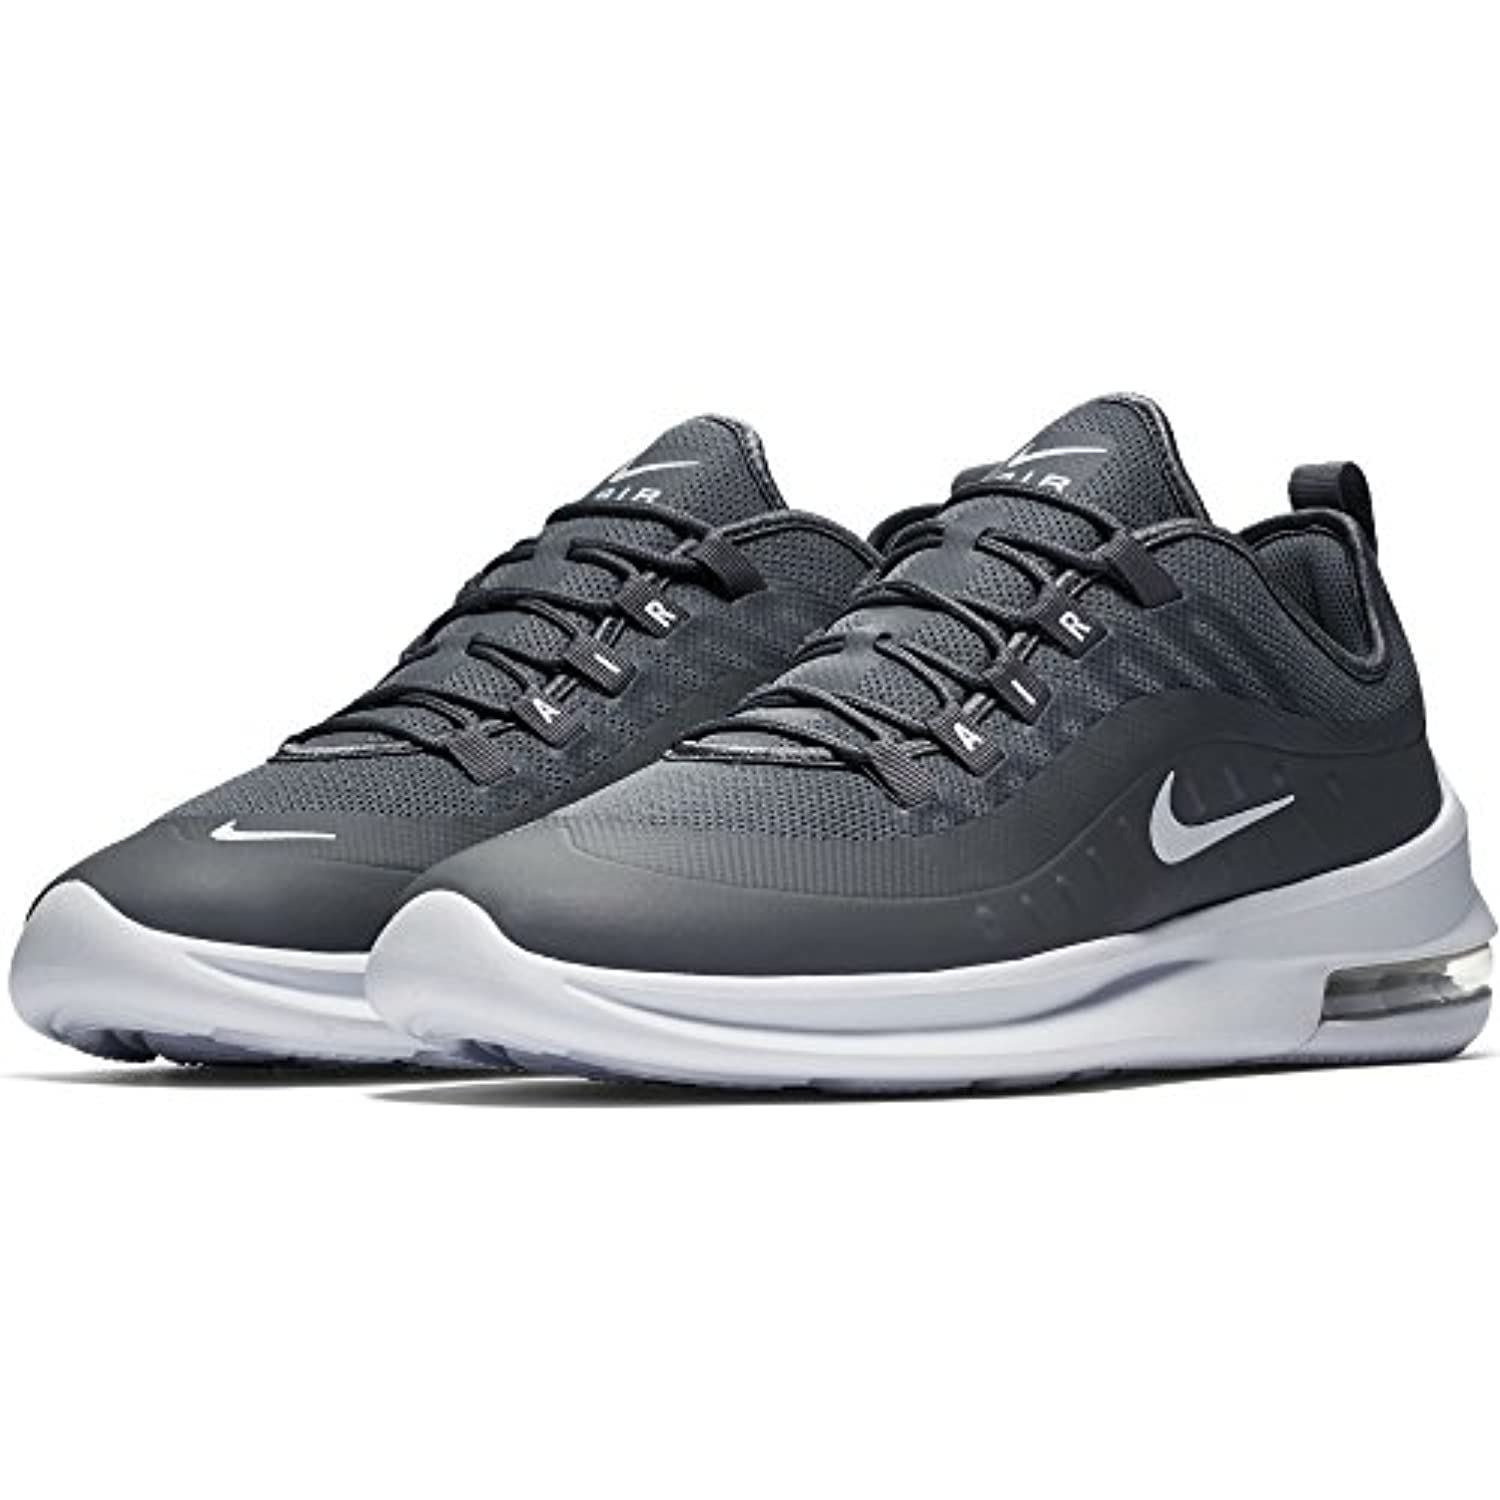 sneakers for cheap 2fd96 be54e NIKE Air Max Axis, Baskets Baskets Baskets Basses Homme B075ZZNRBF - c30fbc